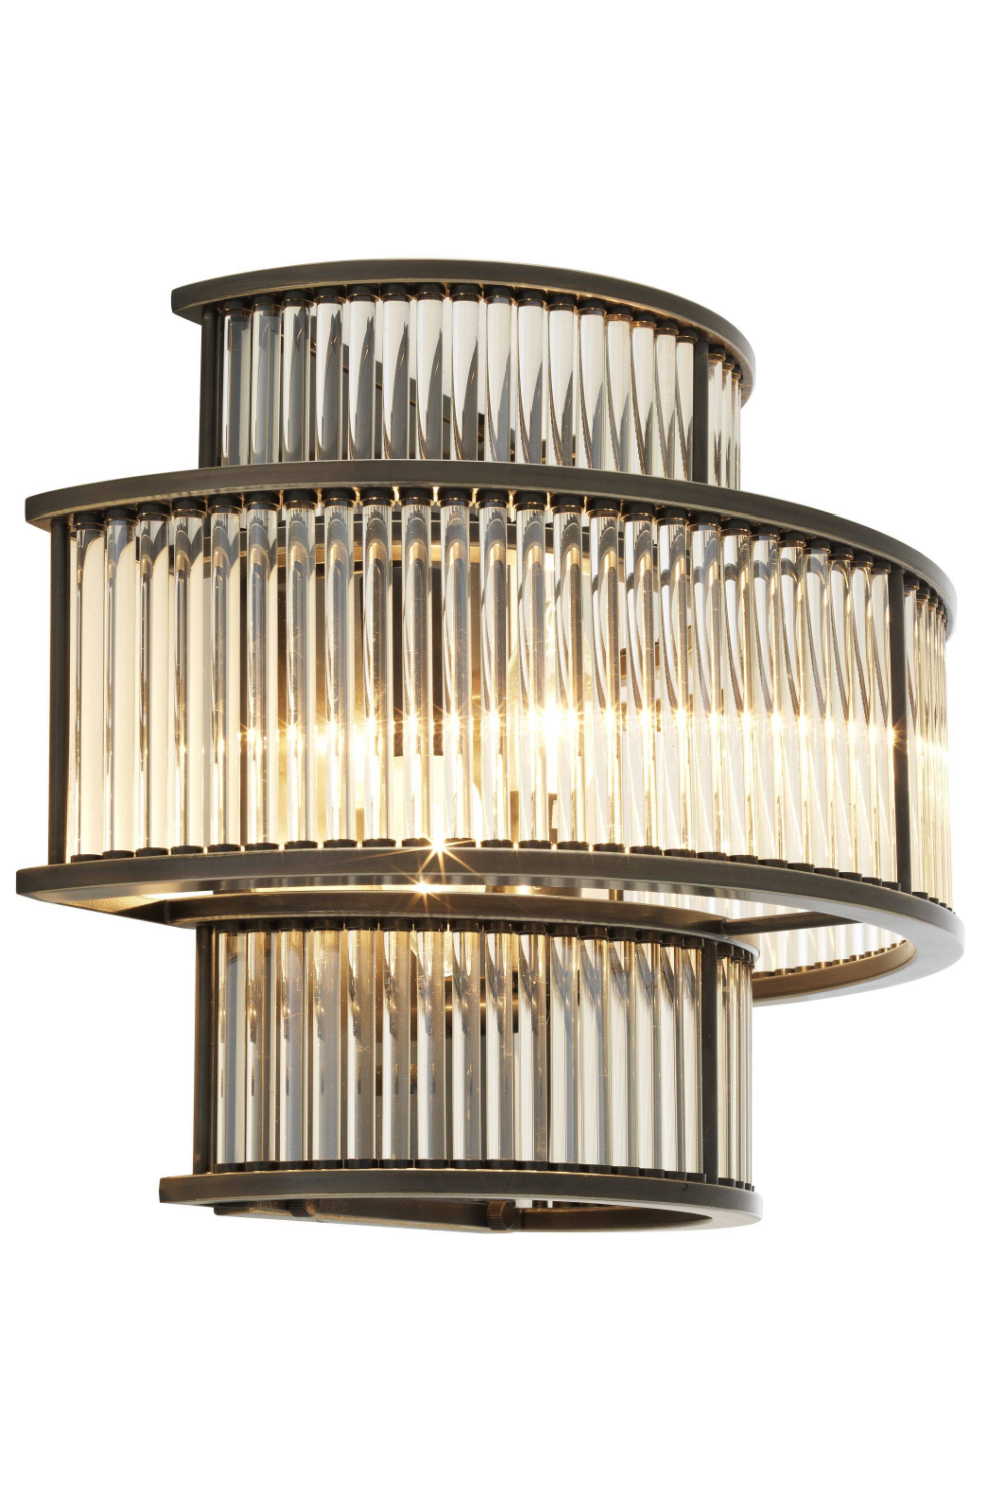 Layered Glass Wall Sconce | Eichholtz Mancini | #1 Eichholtz Retailer